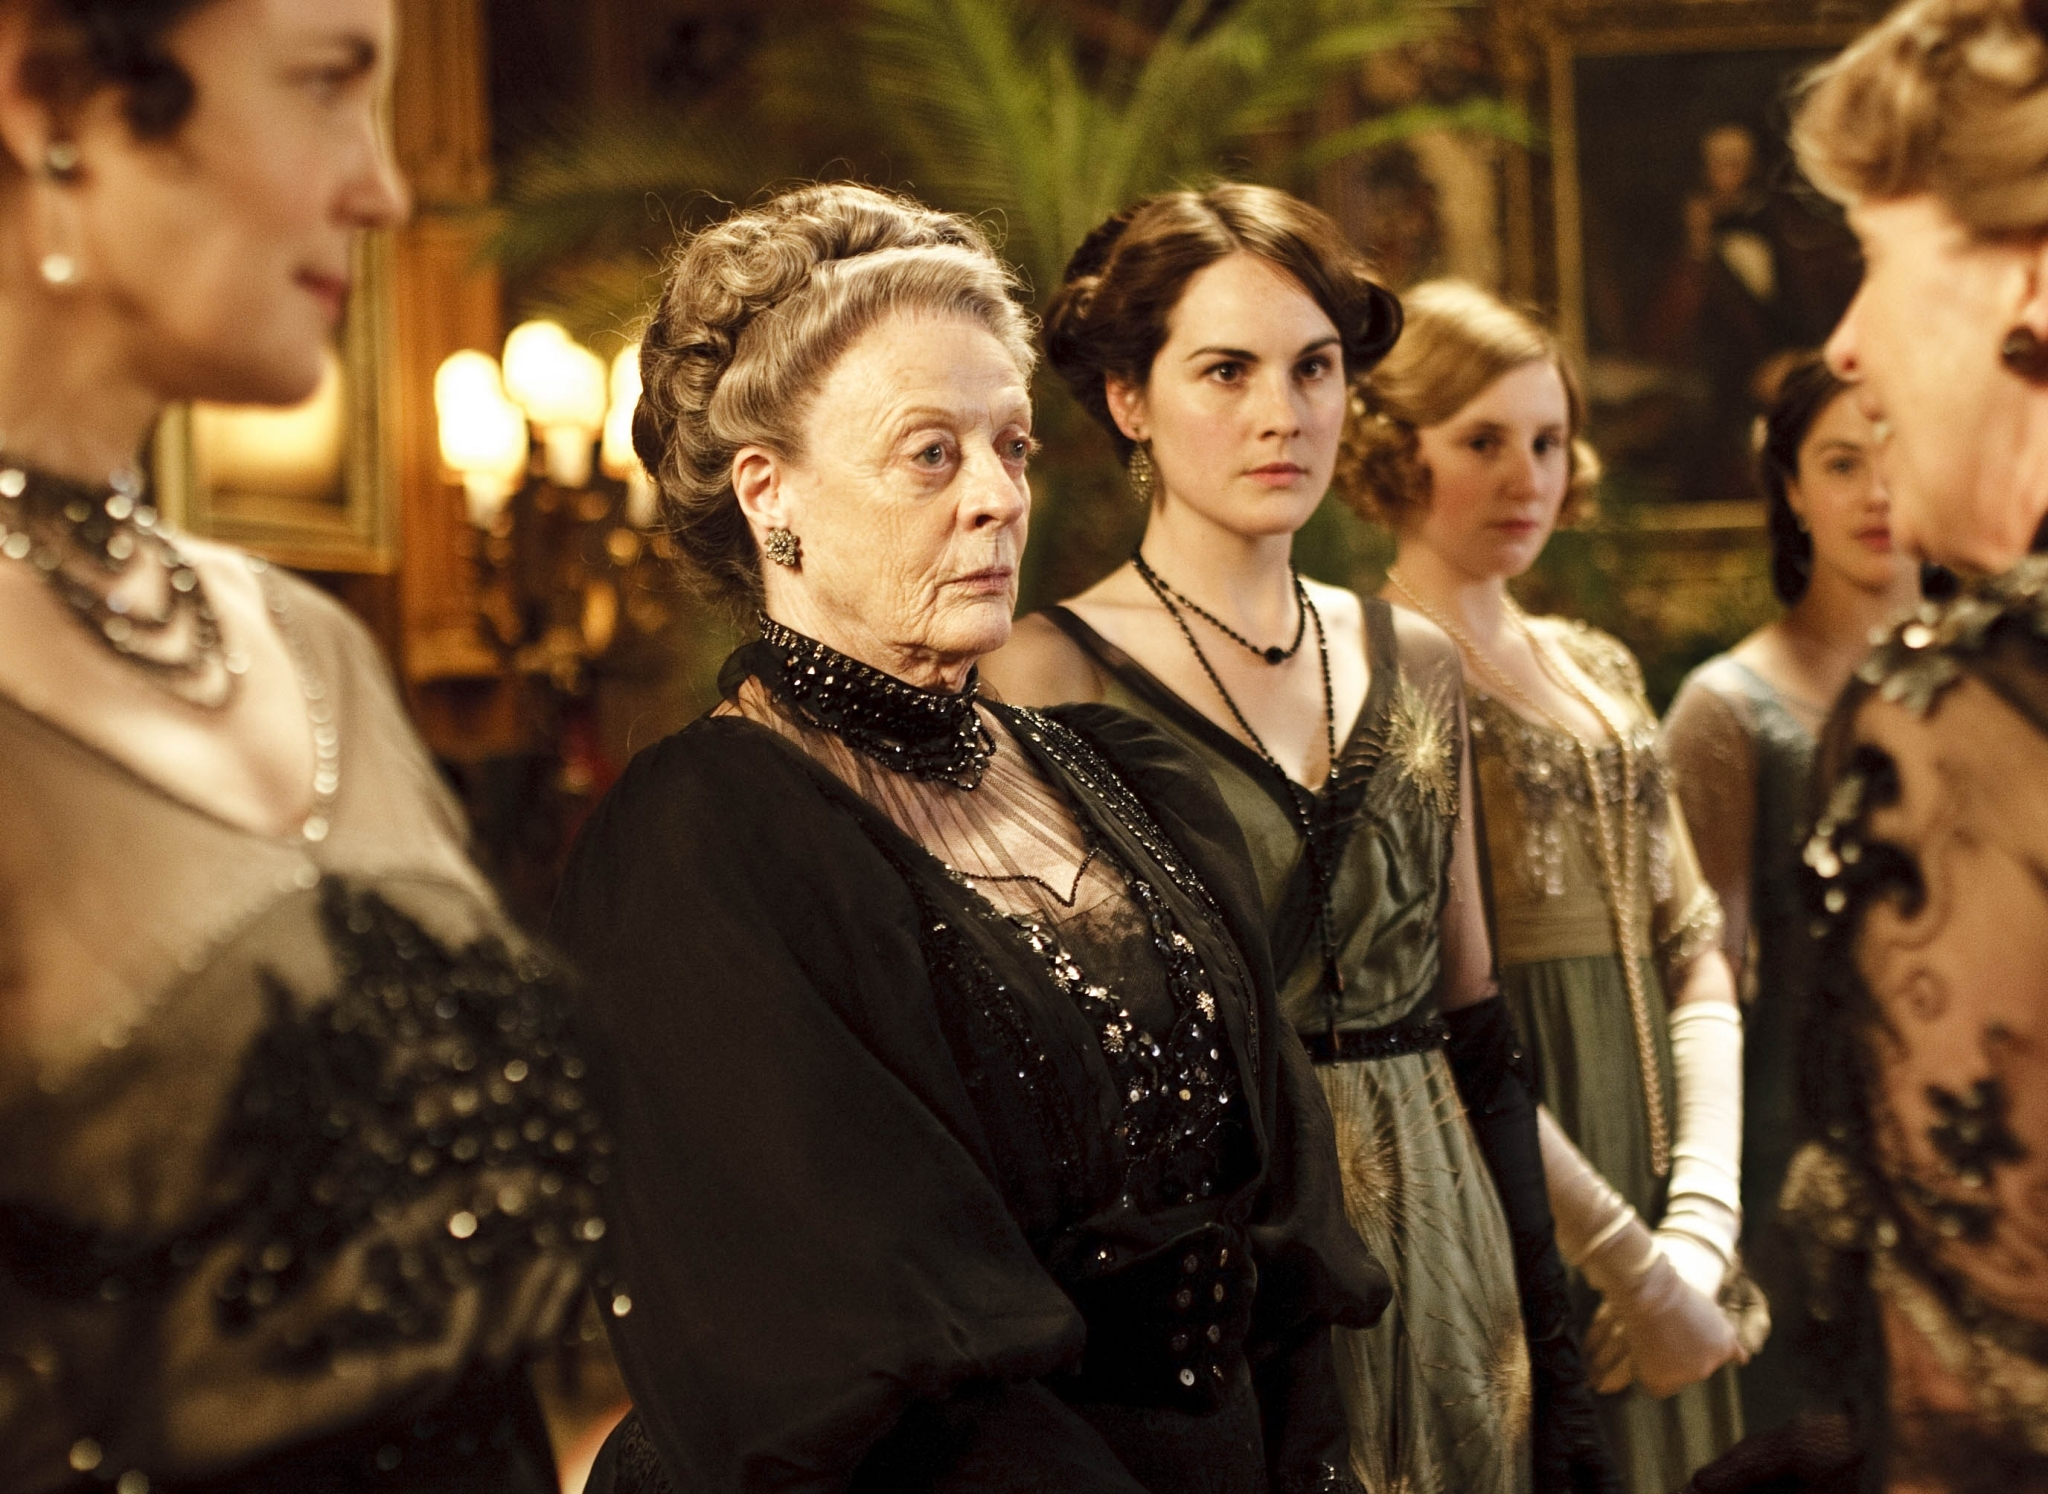 Maggie Smith, Elizabeth McGovern, Penelope Wilton, Michelle Dockery, Jessica Brown Findlay Laura Carmichael in a scene from 'Downton Abbey.'